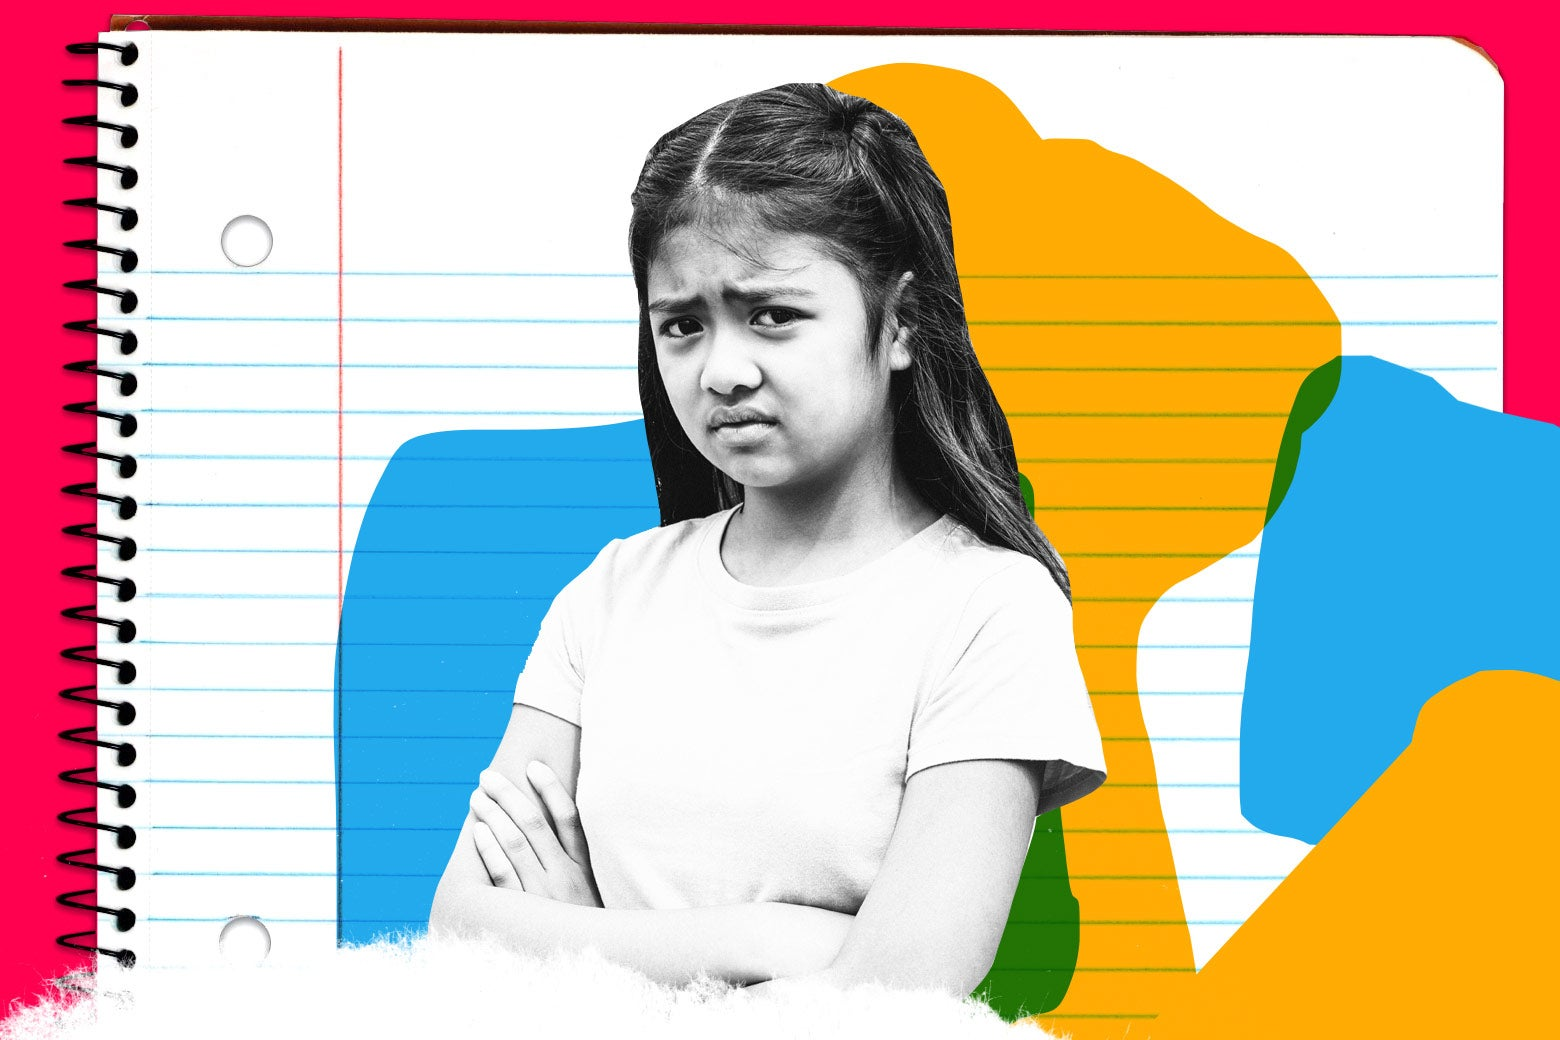 Photo illustration of a disgruntled-looking girl staring directly into the camera against a background of lined notebook paper.